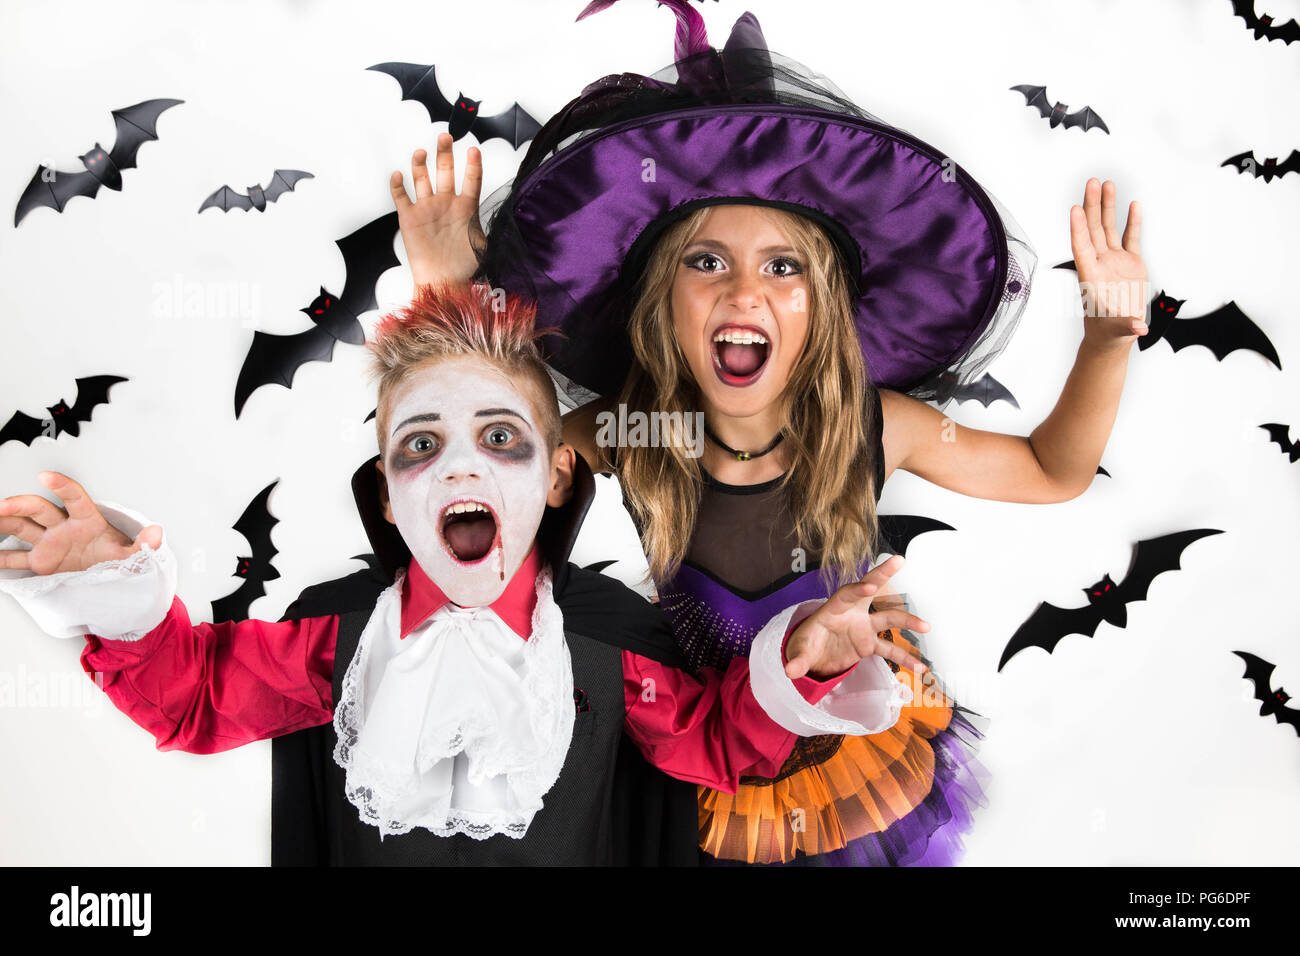 Trick or Treat! Kids scare people in Halloween night to earn candies according to the holiday tradition - Stock Image